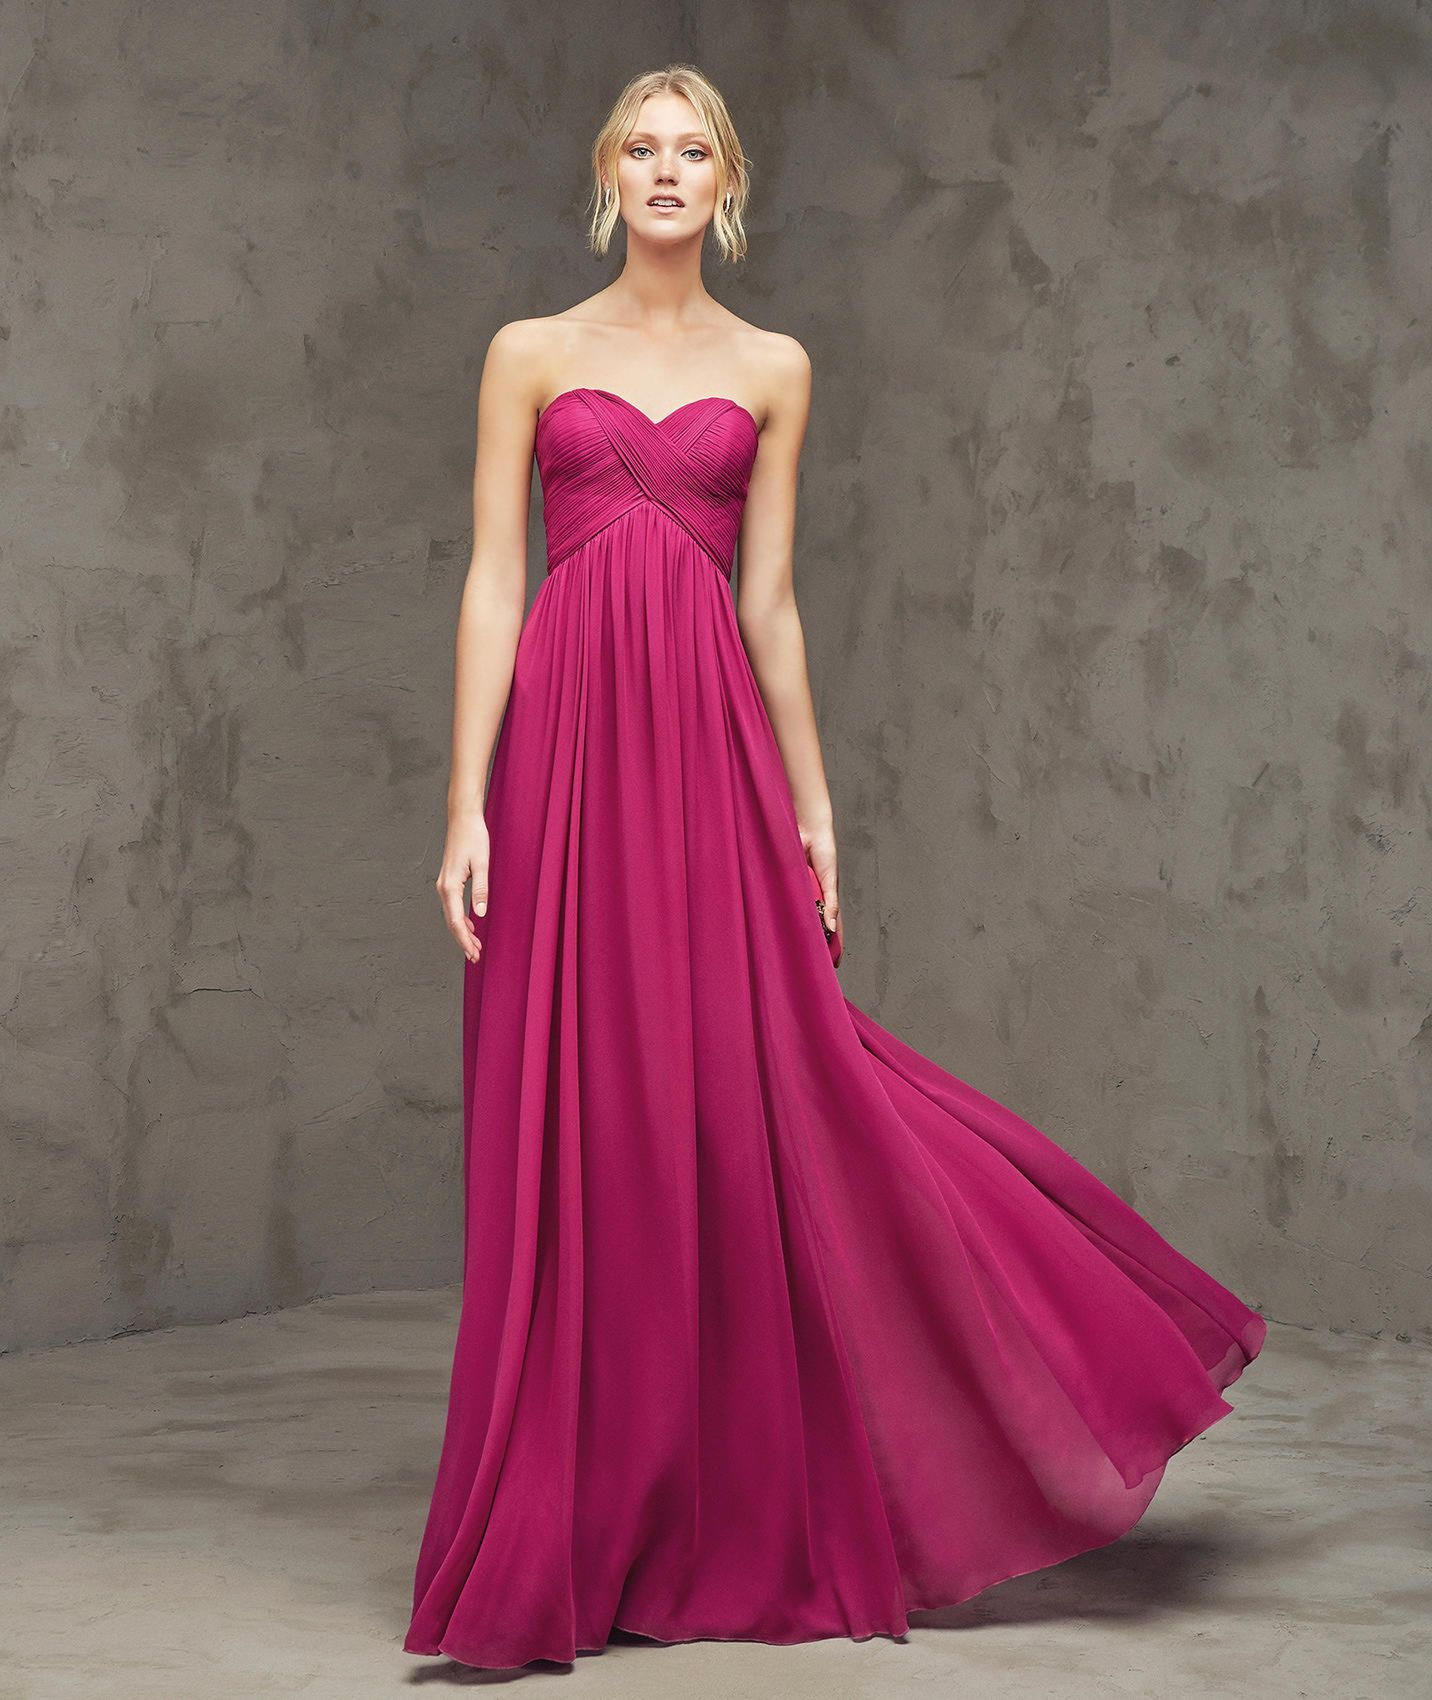 Maternity Sweetheart Floor Length Grape Chiffon A Line Evening Dress Cpr0059 bc88aadffdfe